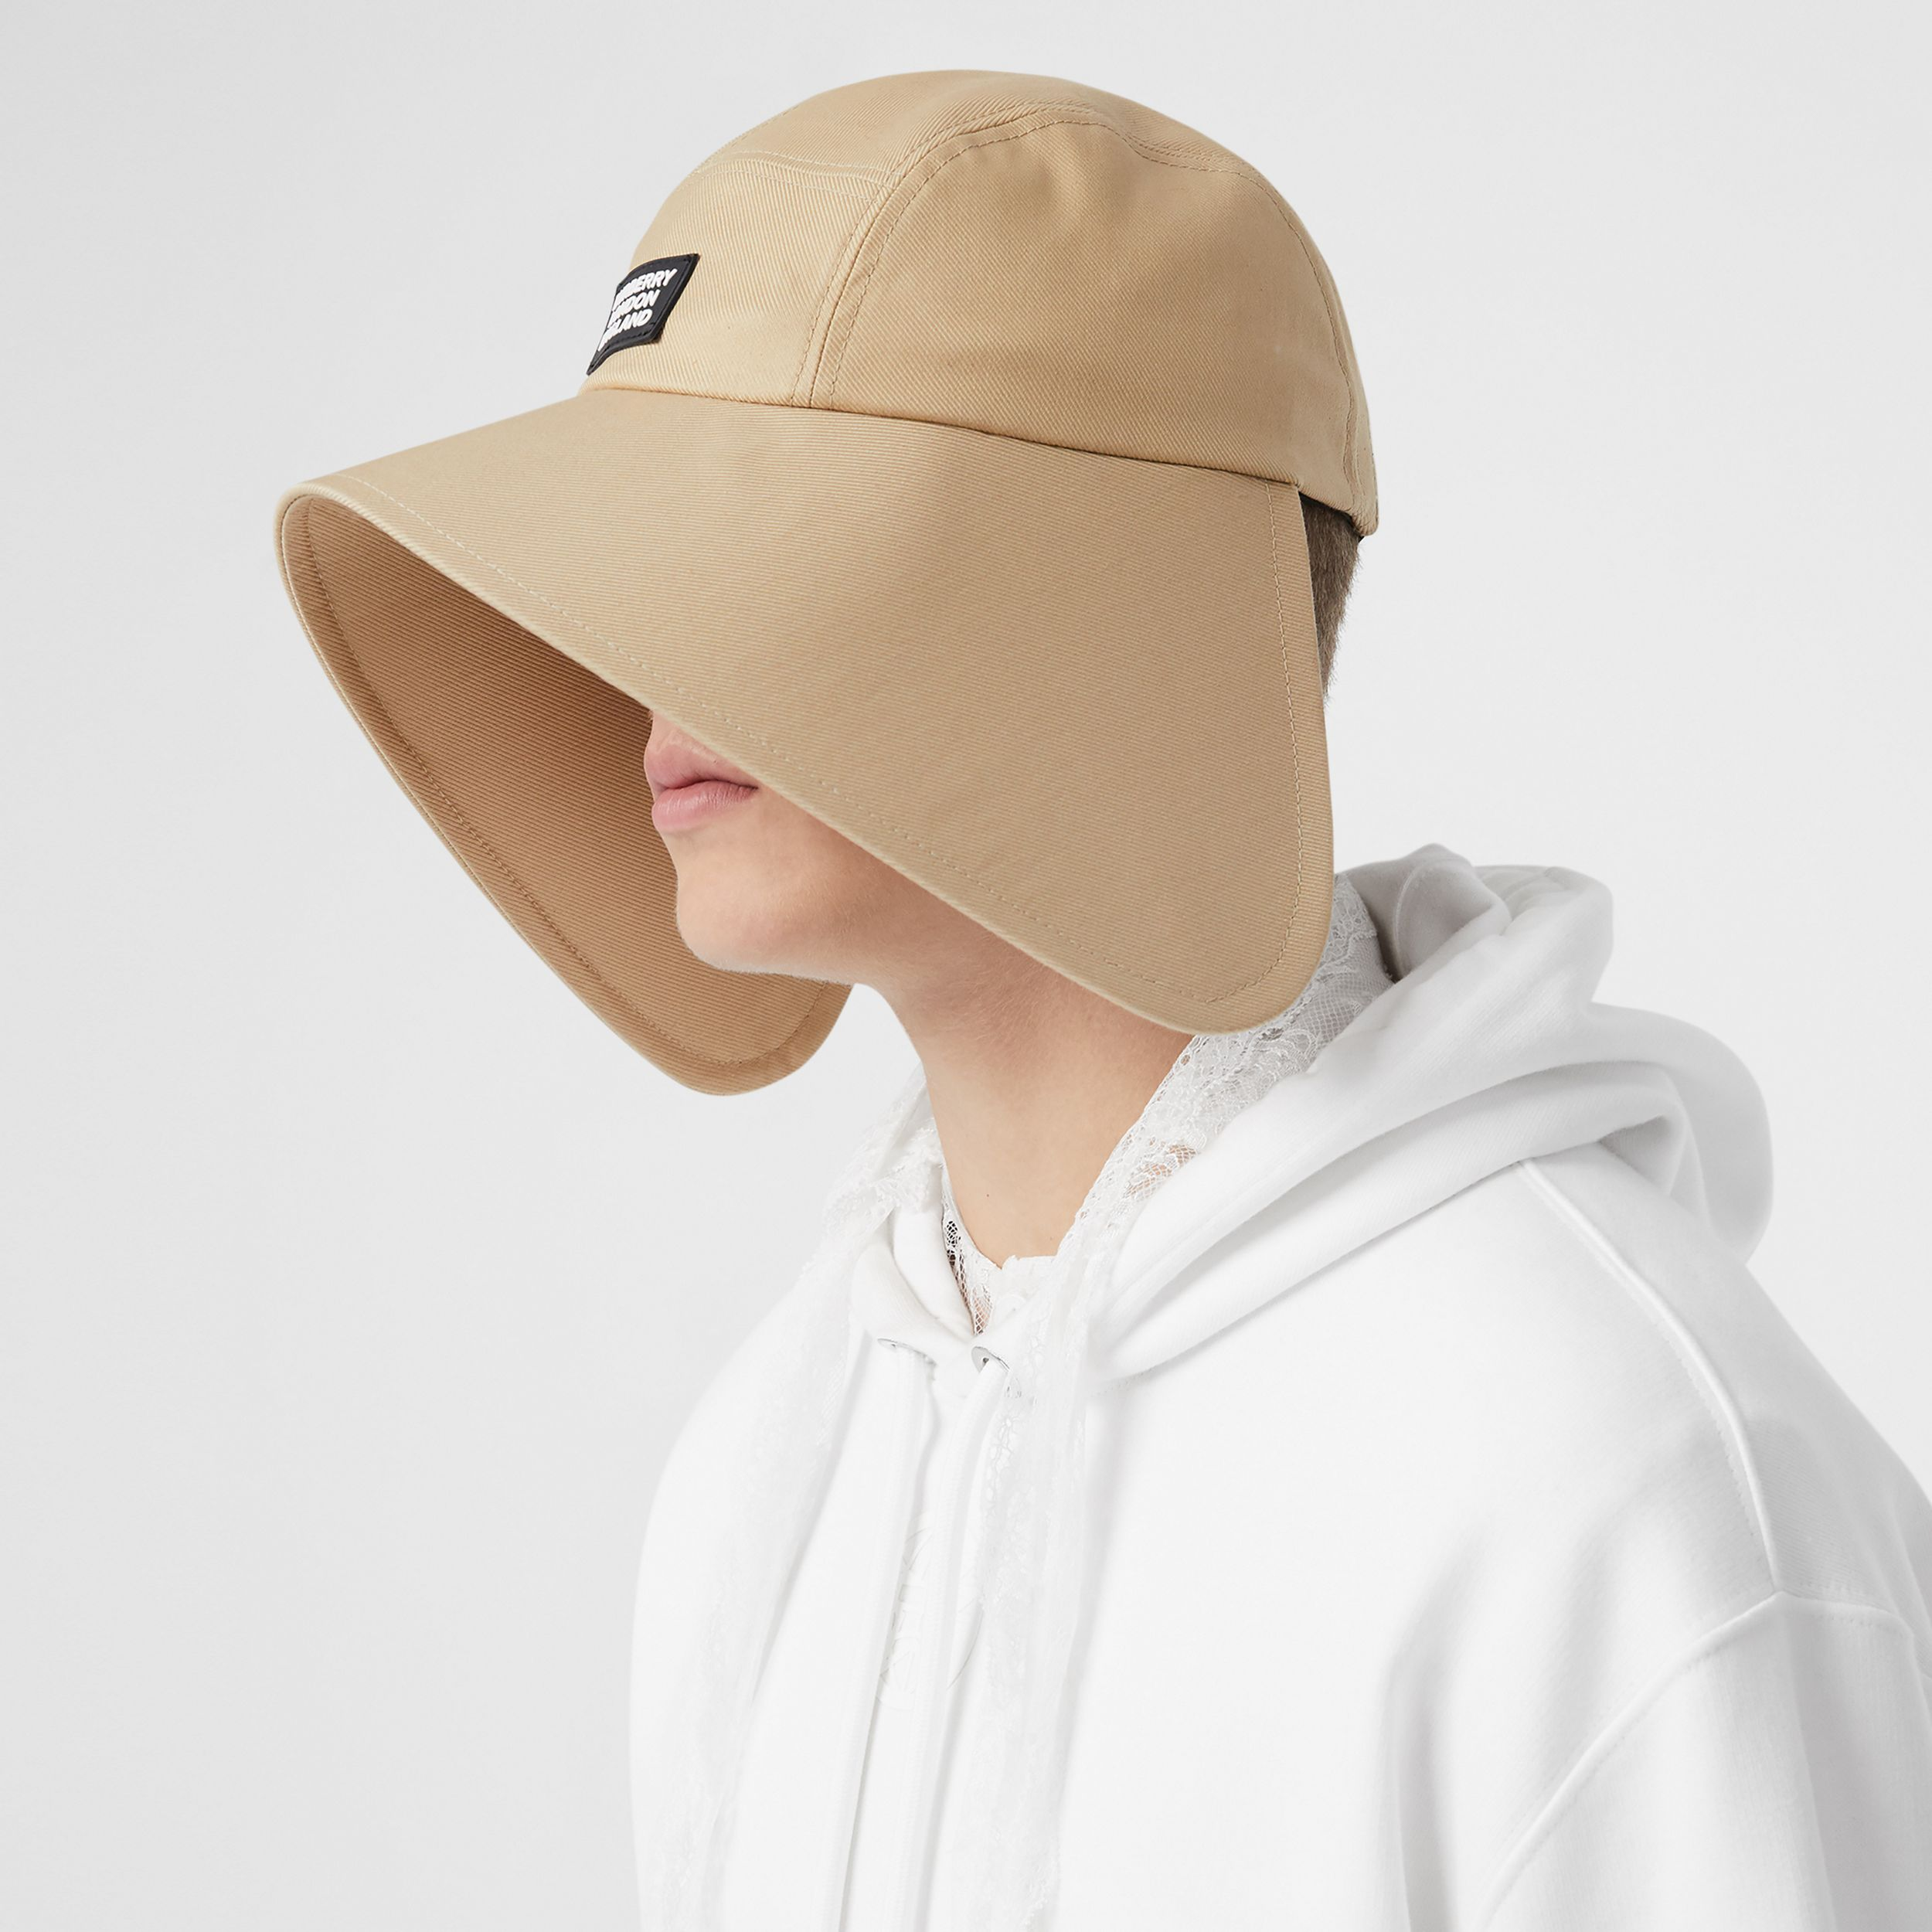 Logo Appliqué Cotton Twill Bonnet Cap in Soft Fawn | Burberry - 4